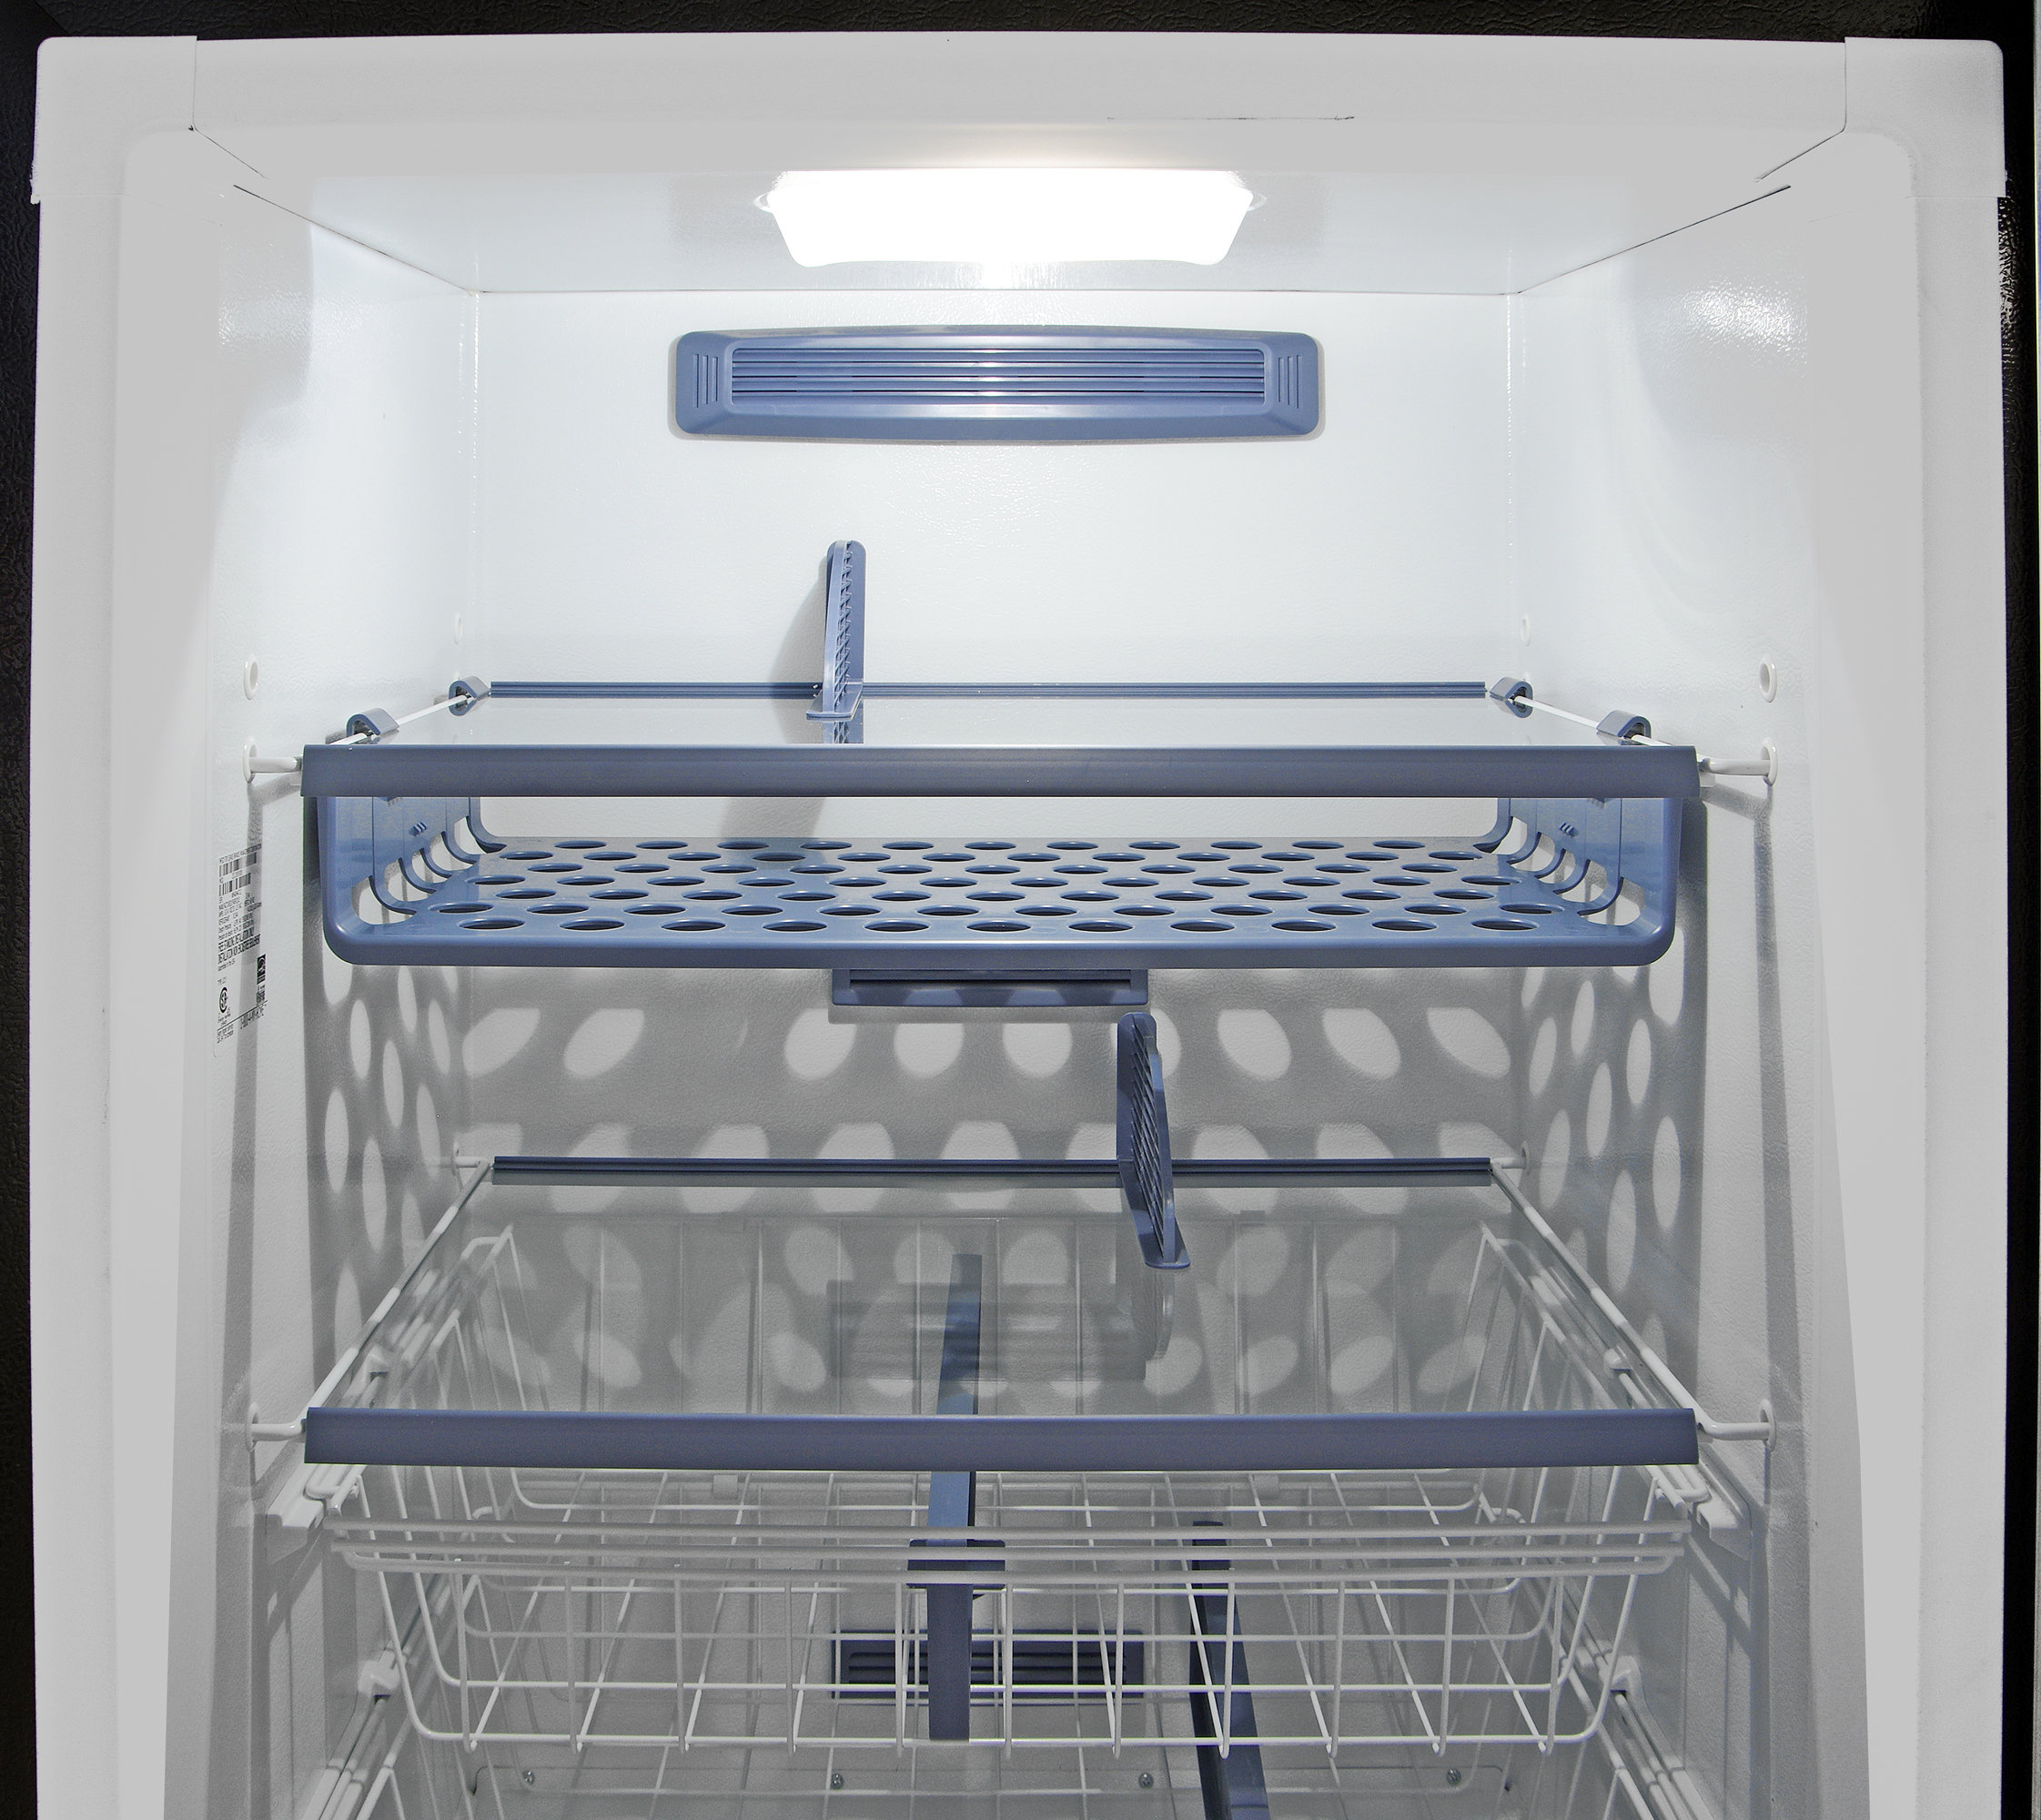 Up at the top of the Kenmore Elite 28093, you've got lots of storage options for keeping food accessible.